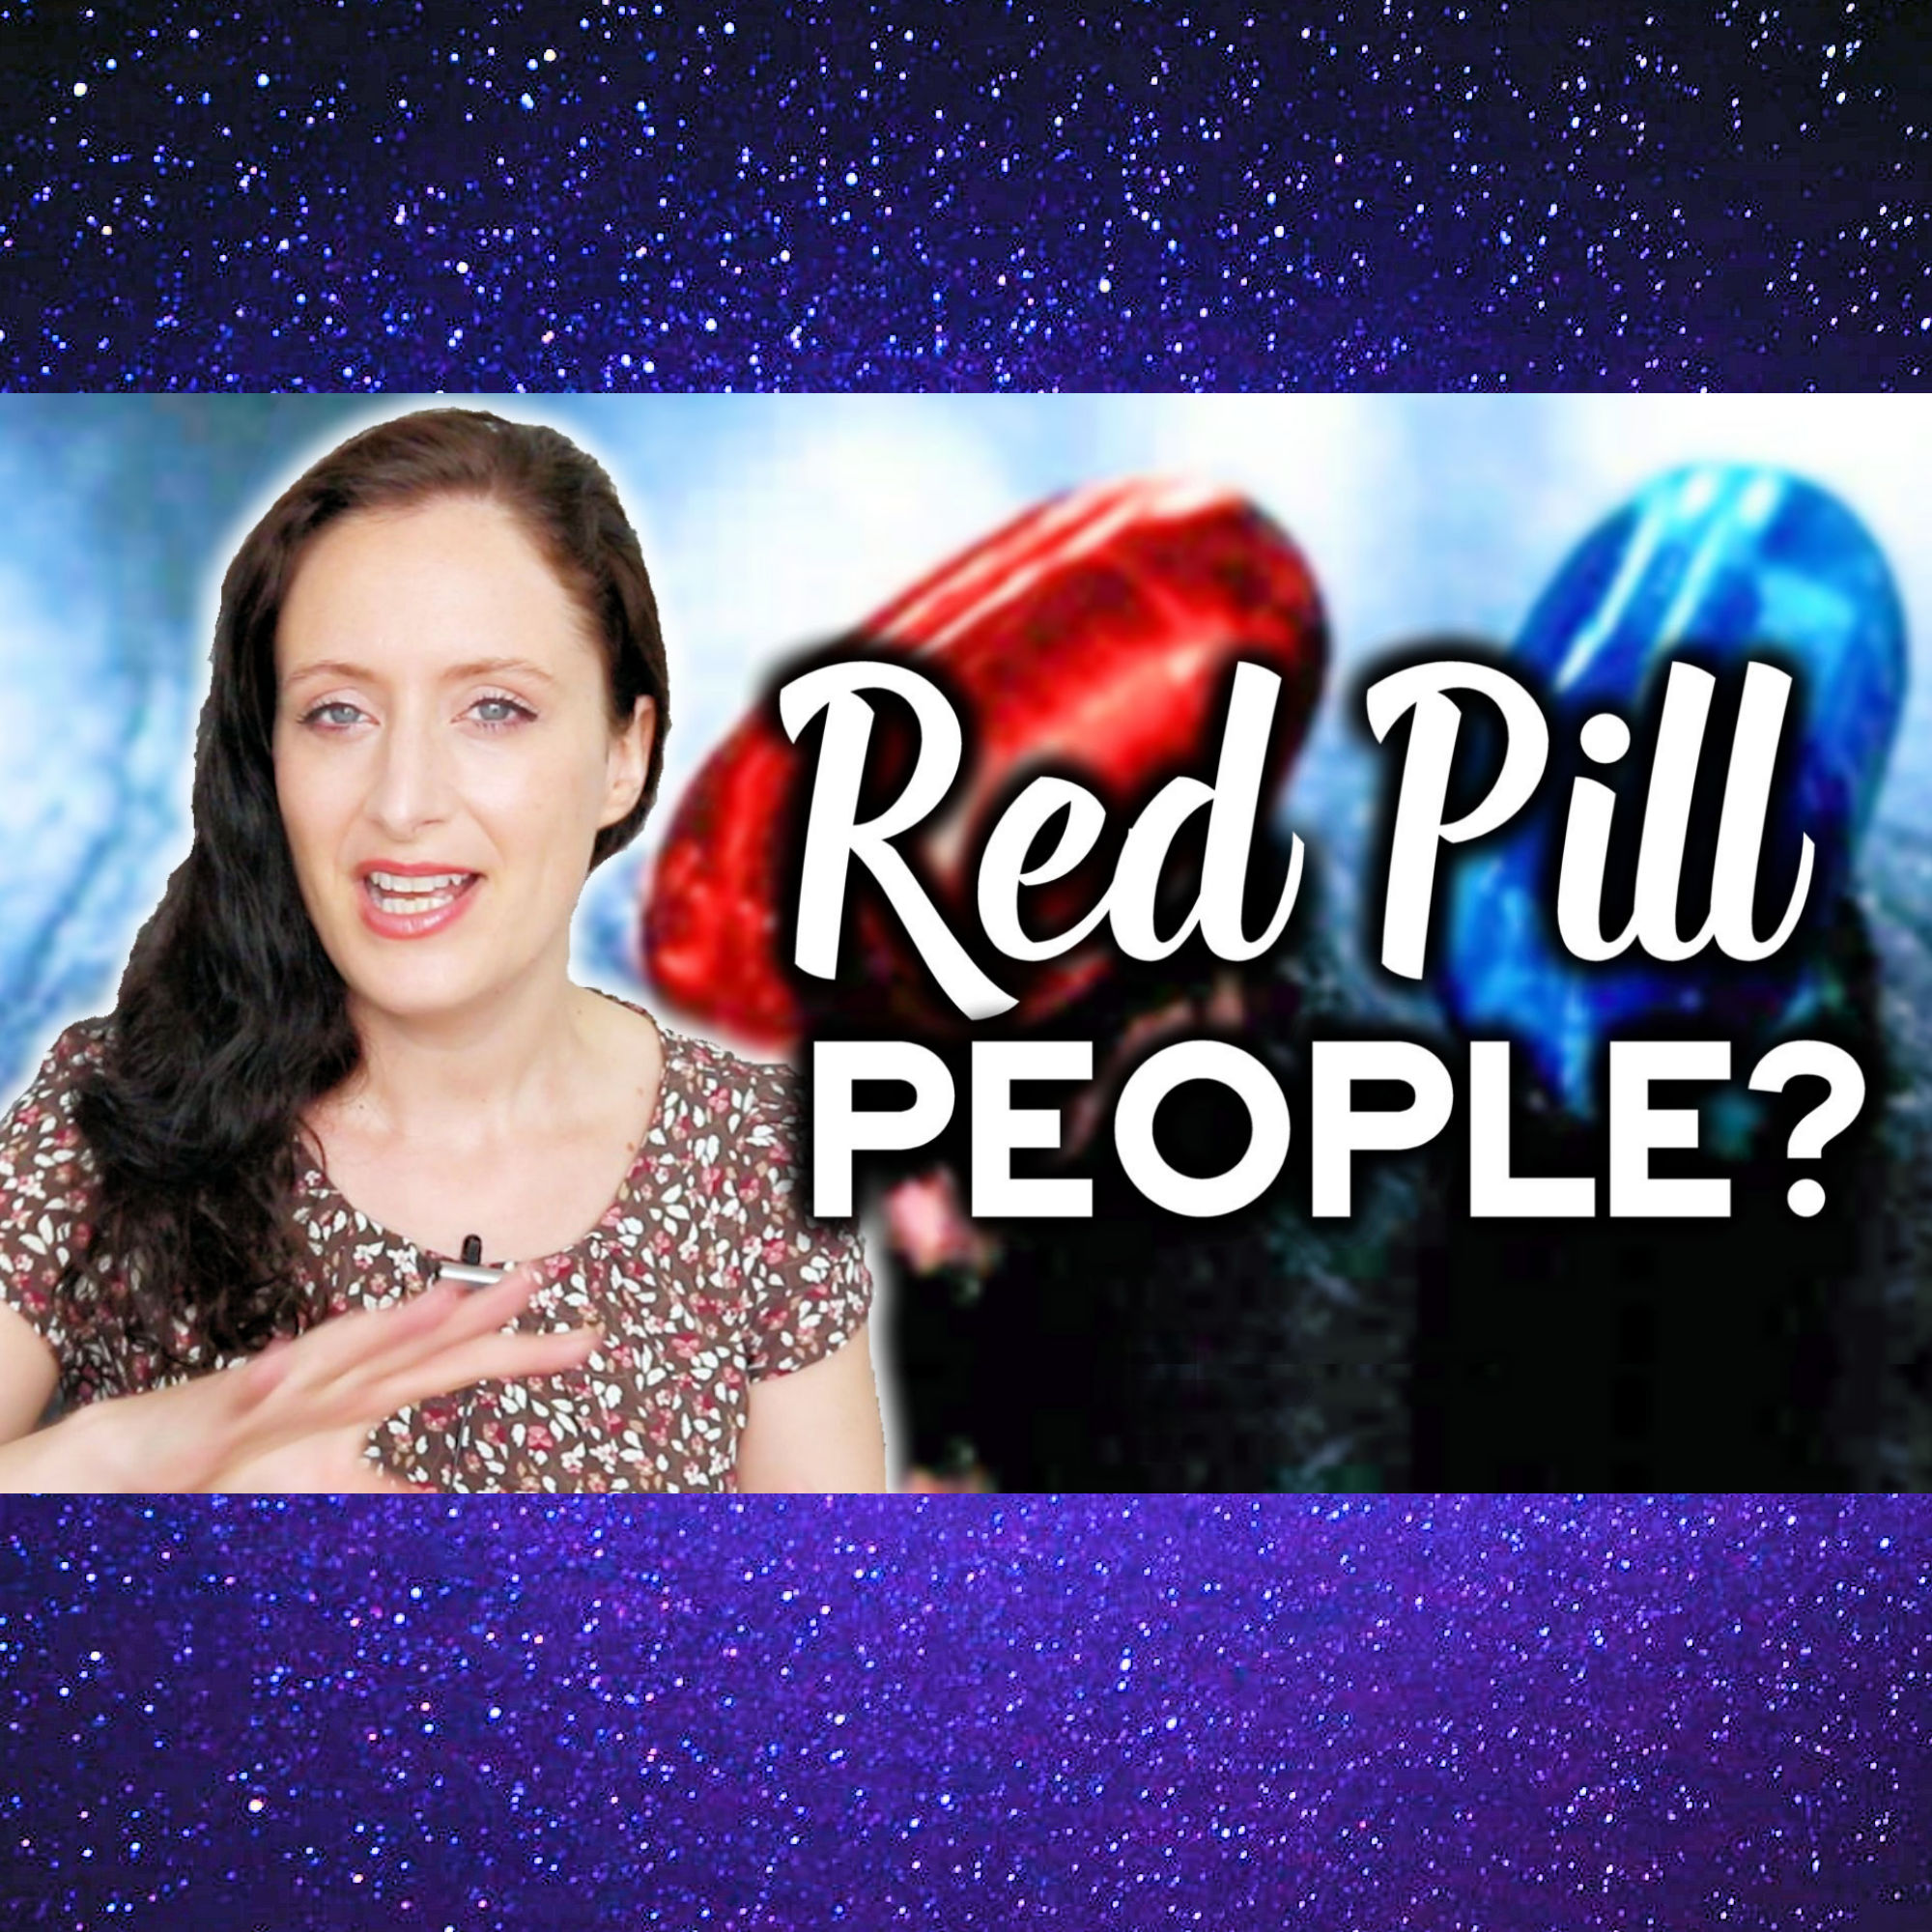 Should We Red Pill People? Is It Right? Our Responsibility? How Hard Is It?